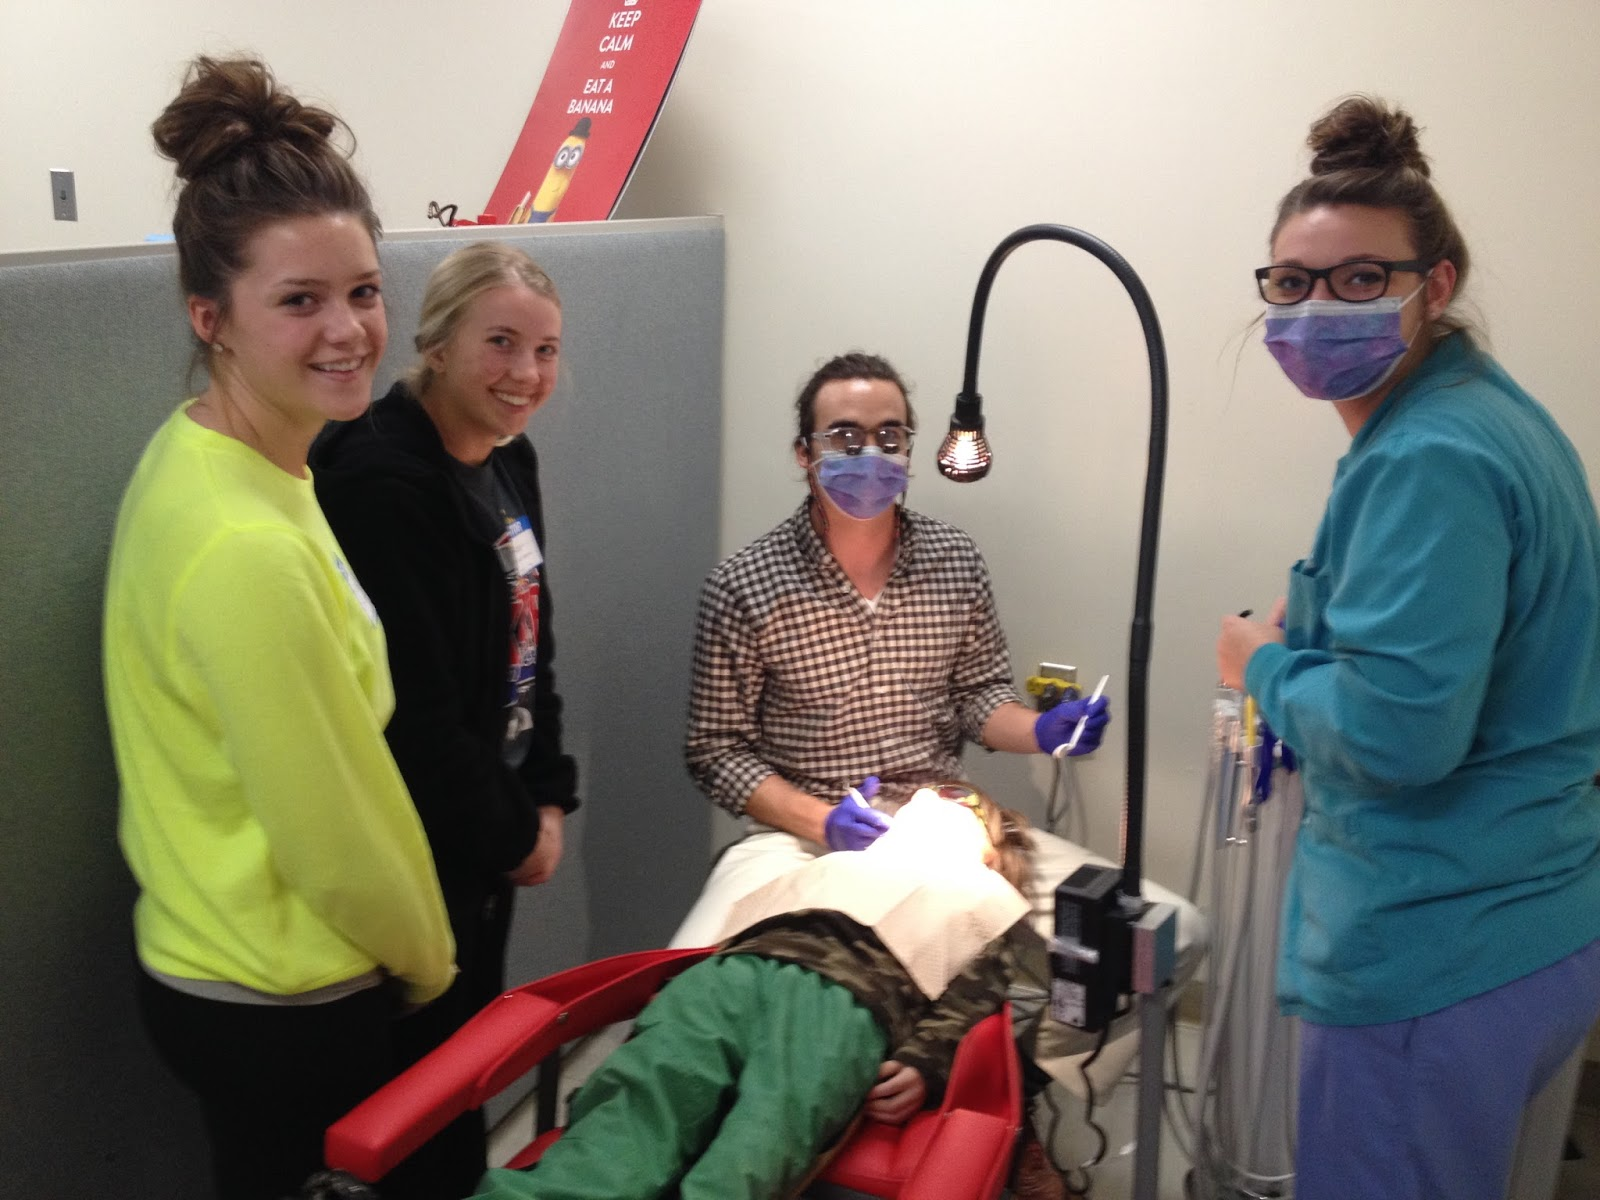 chadron high school chadron public schools toni and kaci job shadowing dental screenings the chadron high school health professions club was invited to participate in a job shadowing experience in